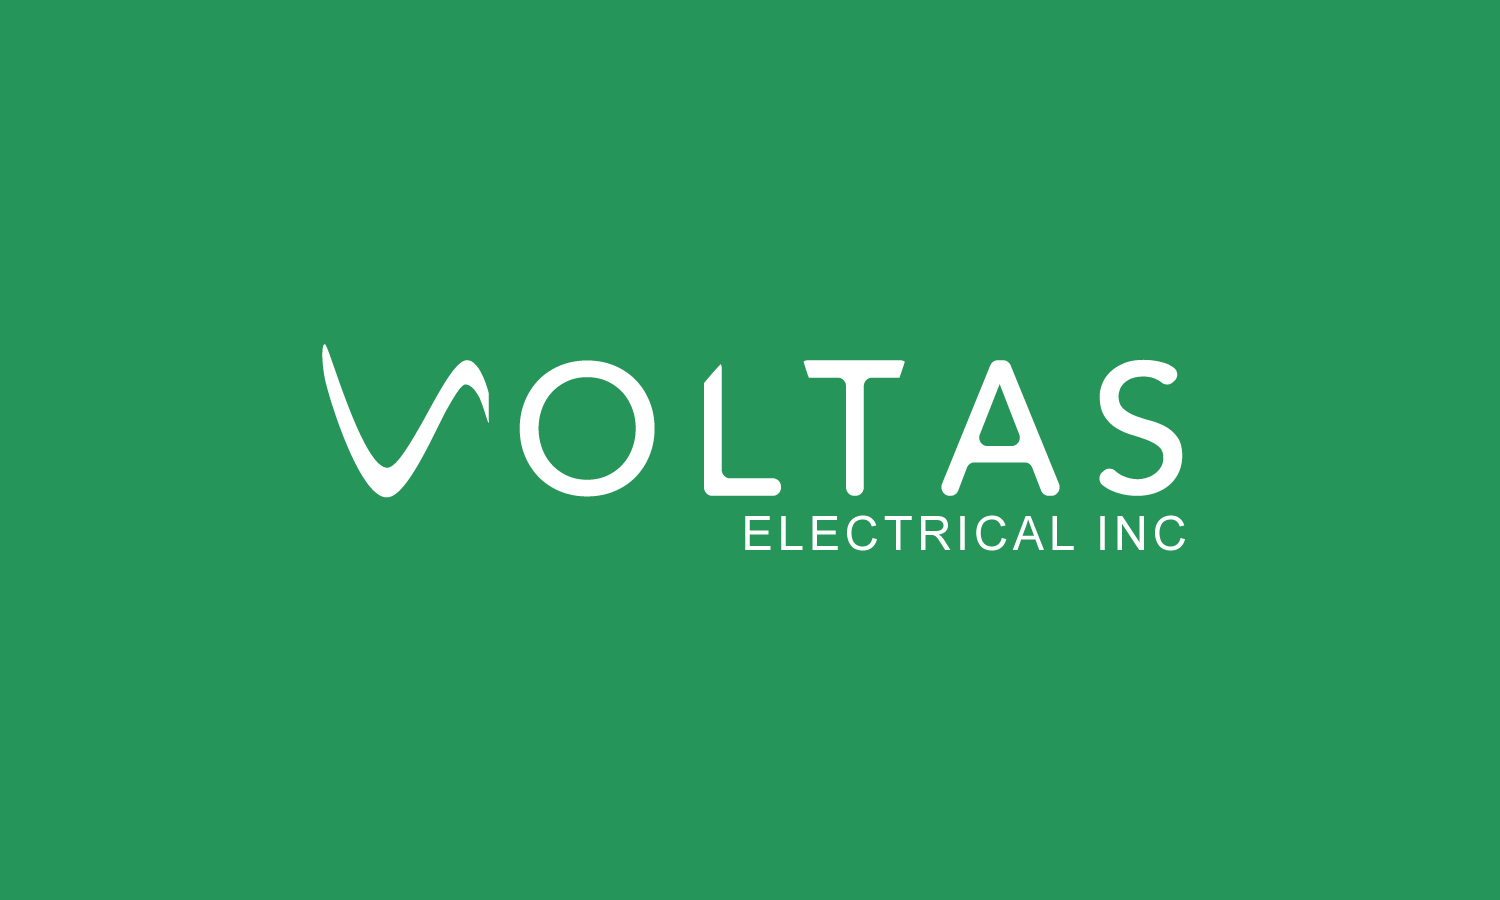 Voltas-electrical-3.5x2_business_cards_front1.jpg